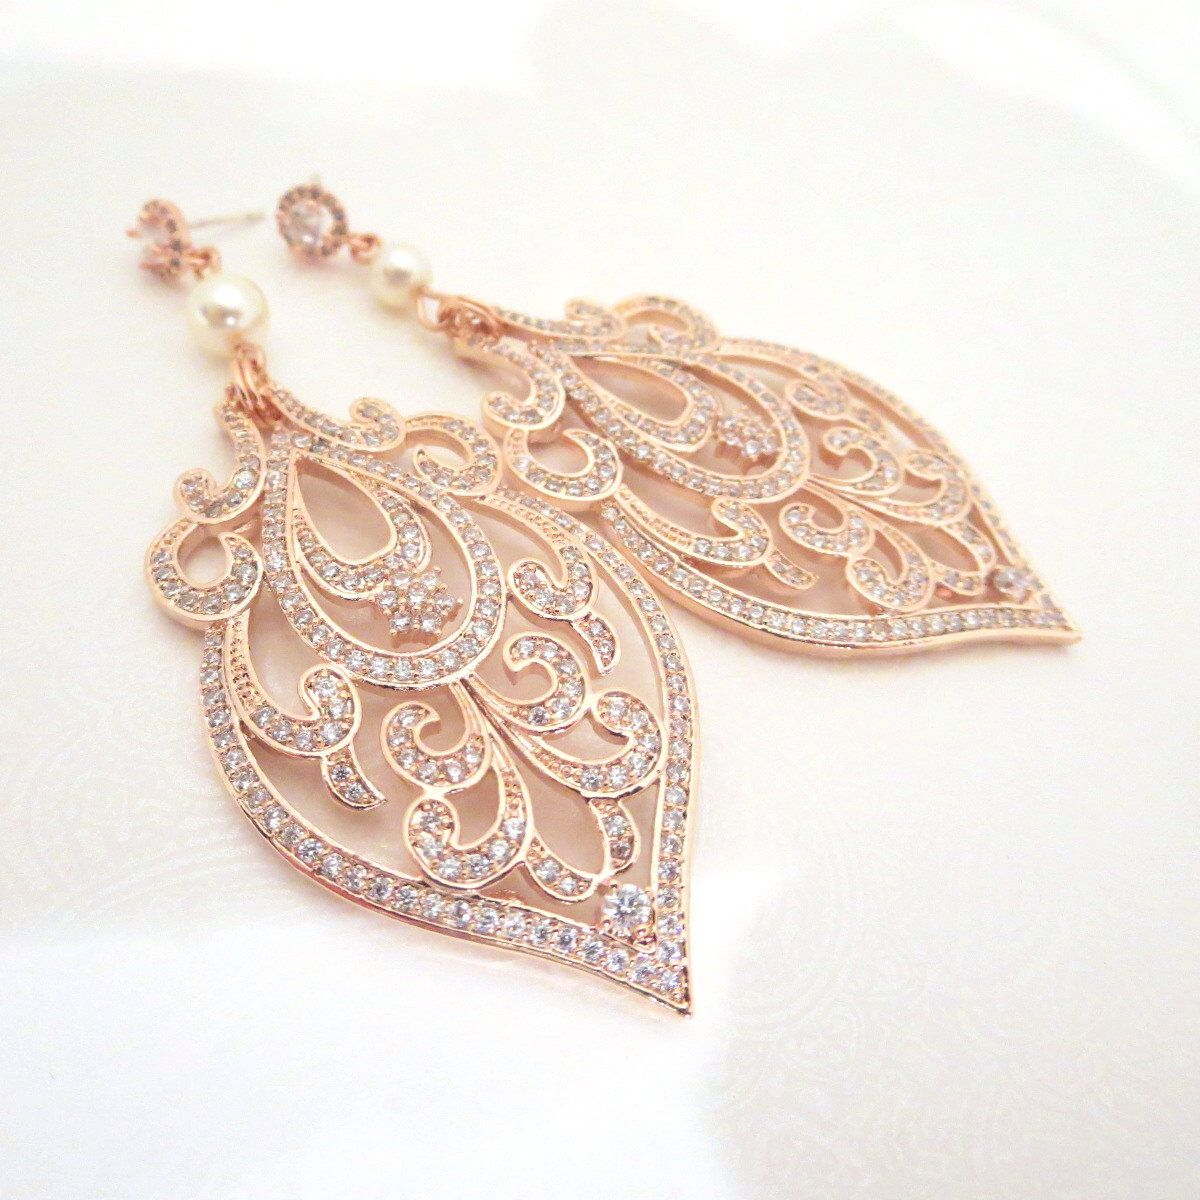 Rose Gold Bridal Earrings Art Deco Wedding Crystal